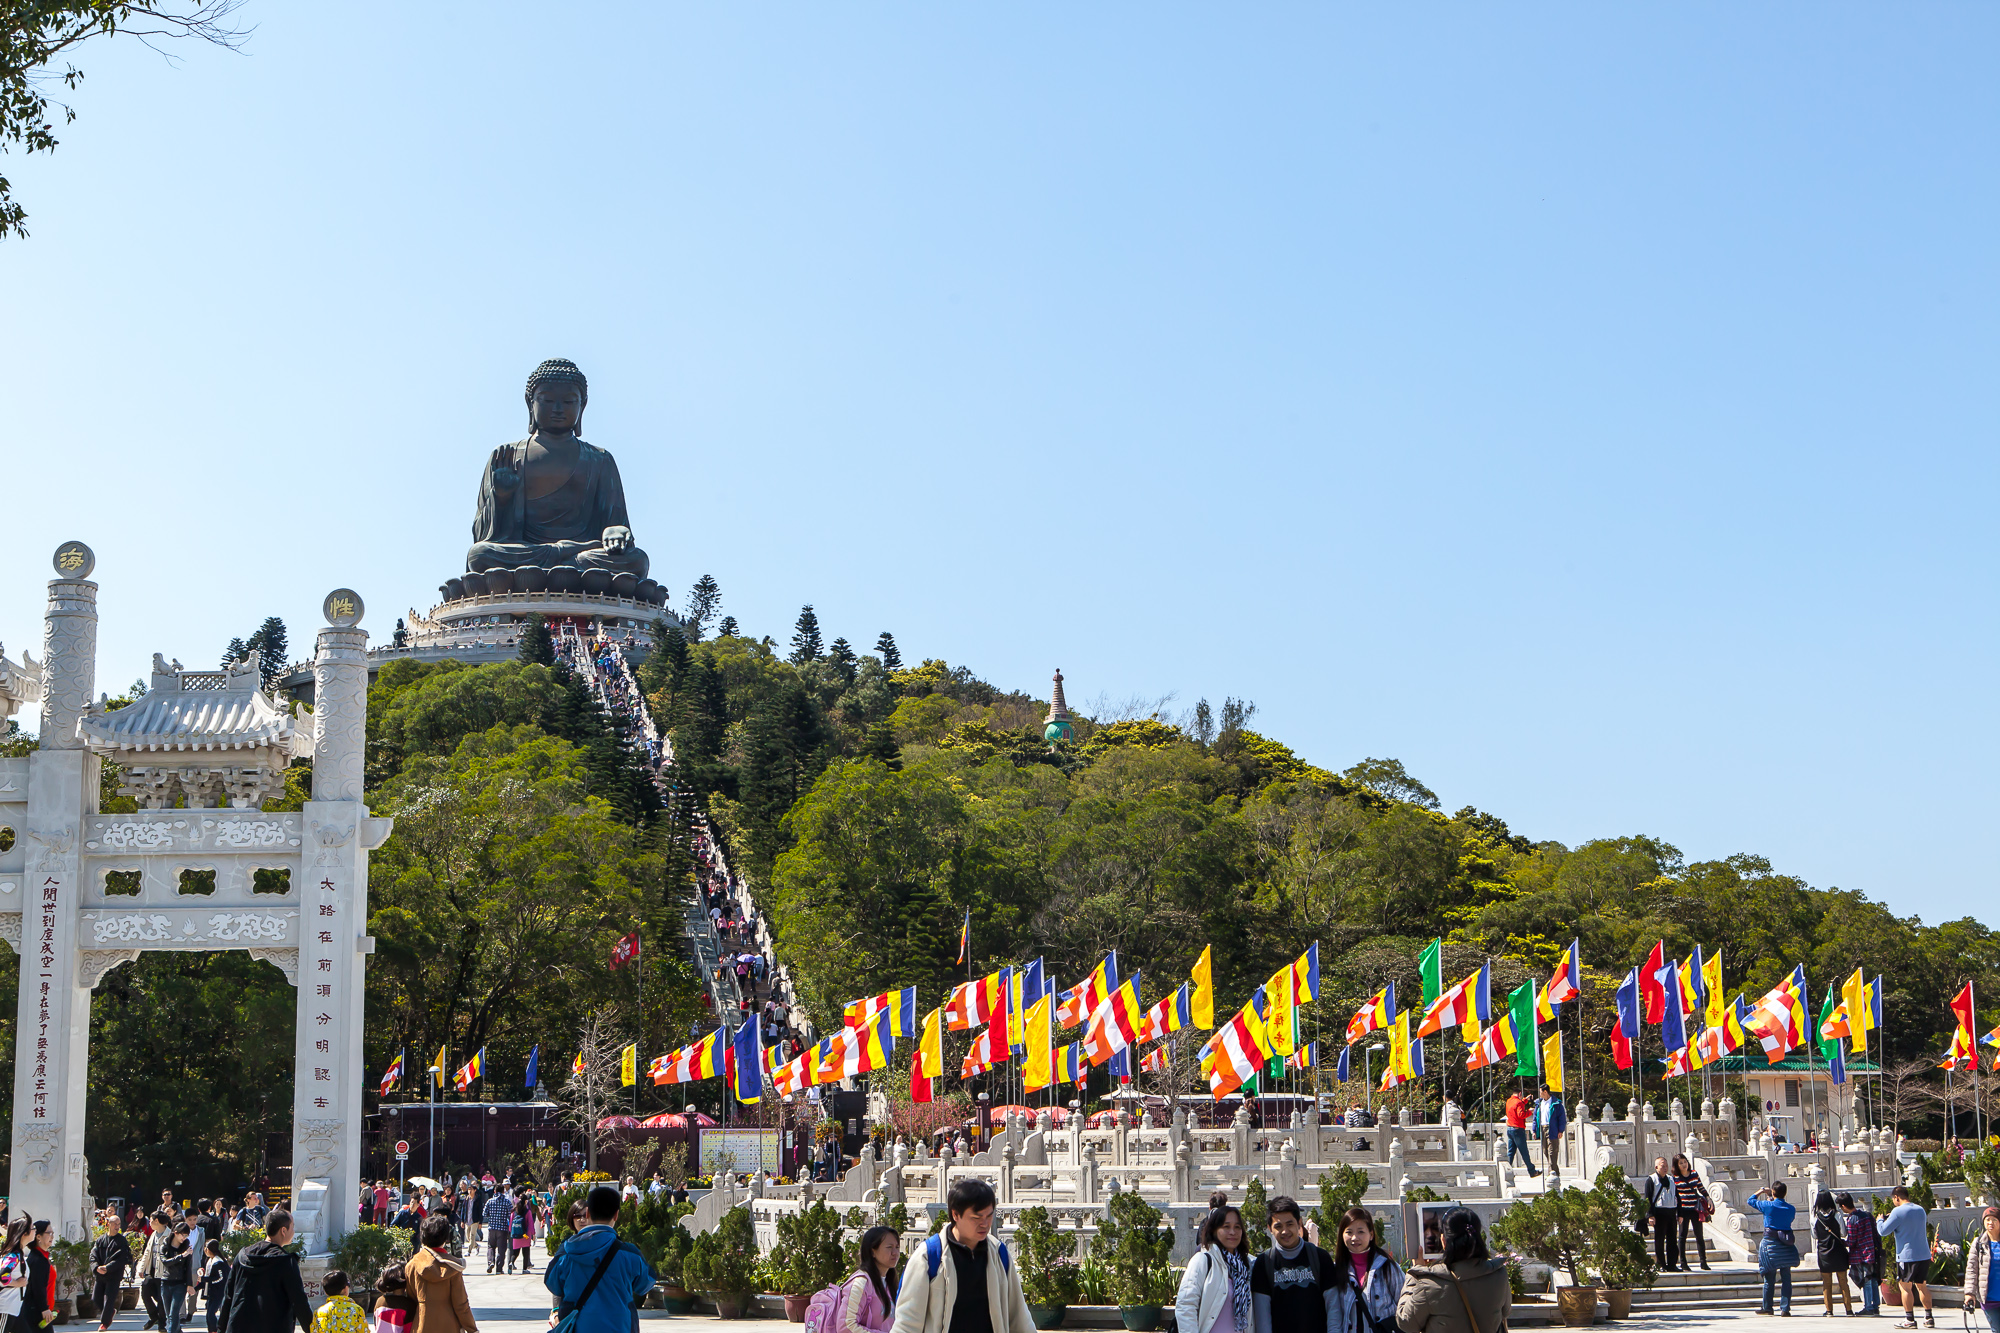 Hong Kong: Lantau, NGONG PING 360, Giant Buddha and Po Lin Monastery excursion